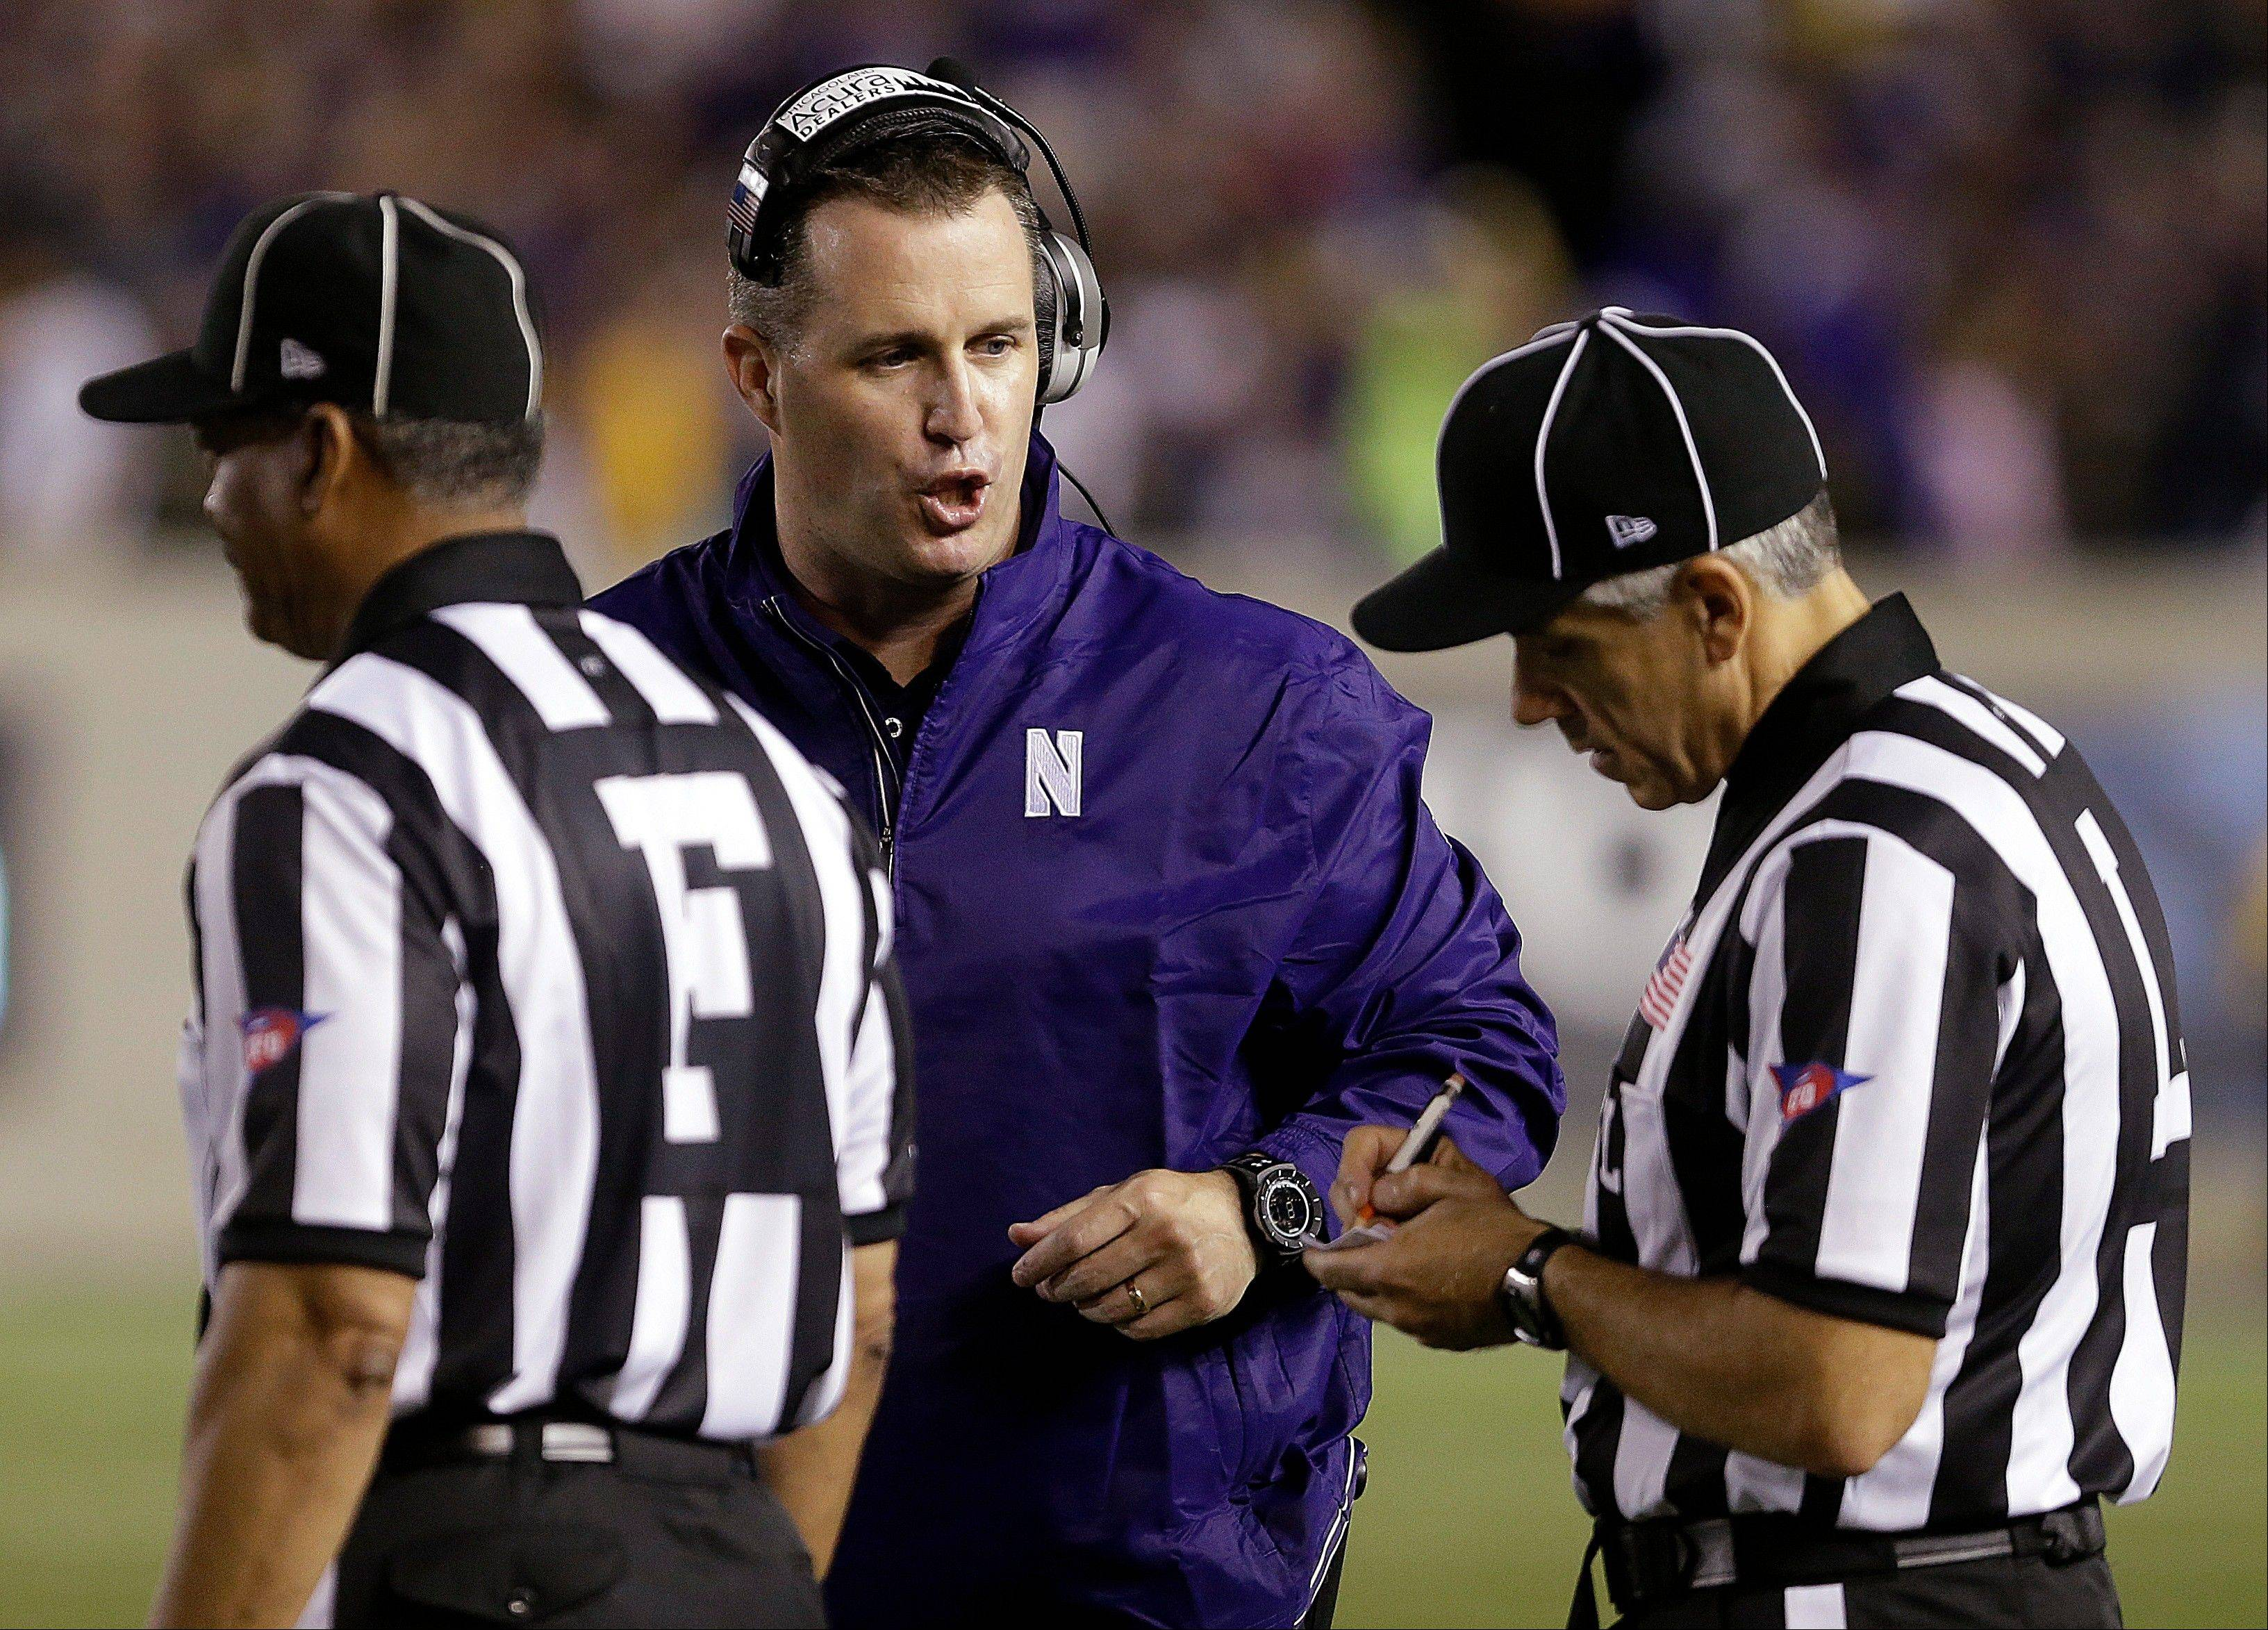 Northwestern coach Pat Fitzgerald speaks with referees during the first half of an NCAA college football game against California on Saturday, Aug. 31, 2013, in Berkeley, Calif.